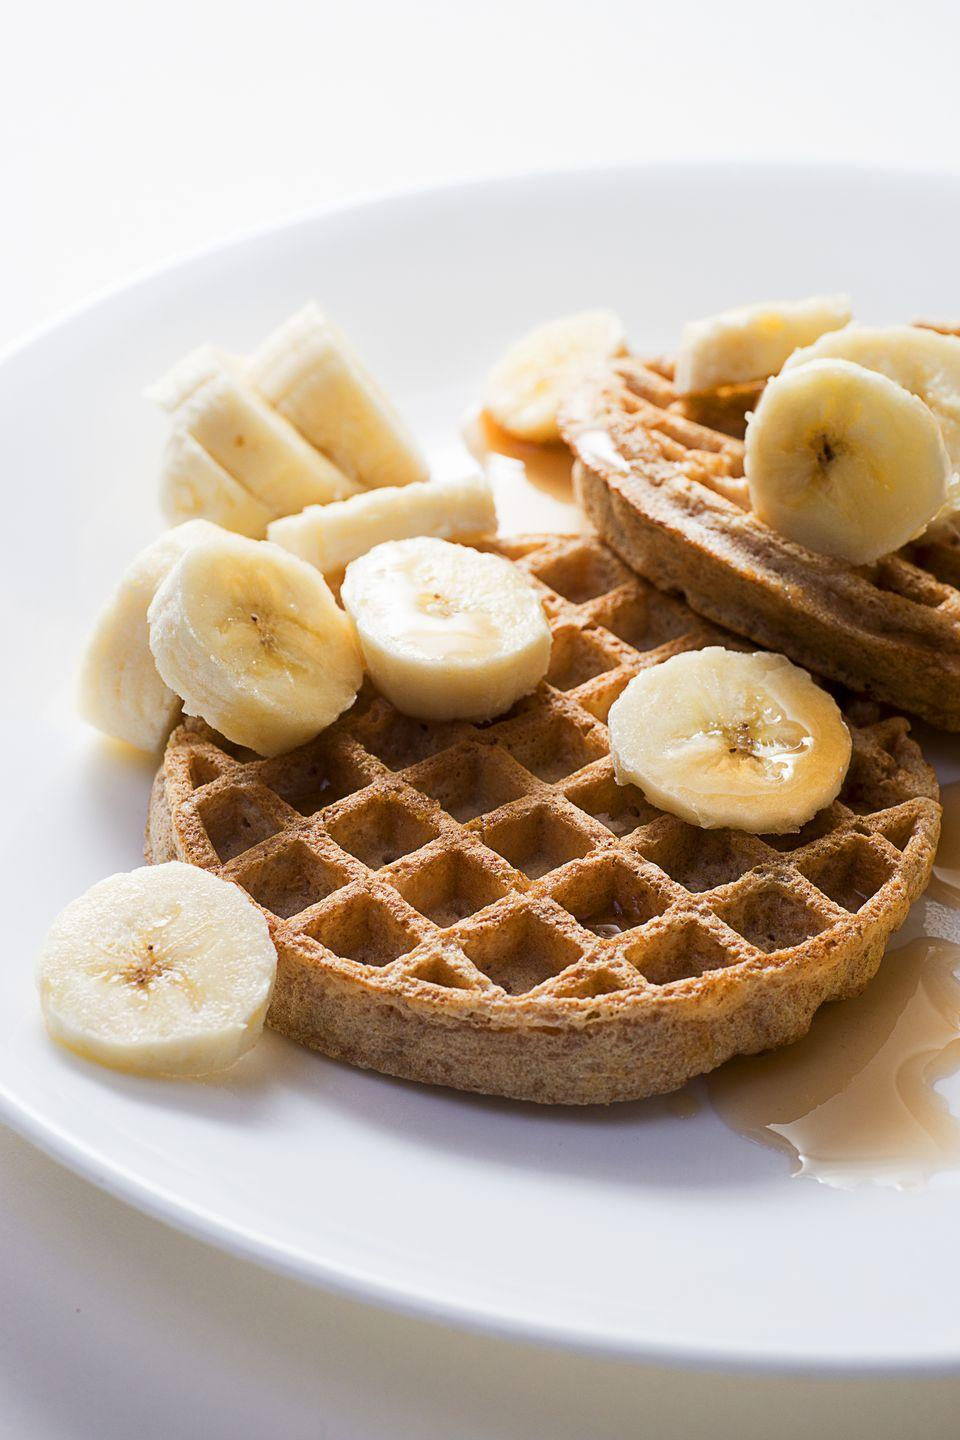 "<p>Toast 1 <a href=""https://www.amazon.com/Vans-Grains-Waffles-Totally-Orginal/dp/B00CJ5U2IE?tag=syn-yahoo-20&ascsubtag=%5Bartid%7C10055.g.4351%5Bsrc%7Cyahoo-us"" rel=""nofollow noopener"" target=""_blank"" data-ylk=""slk:100% whole-grain frozen waffle"" class=""link rapid-noclick-resp"">100% whole-grain frozen waffle</a>, spread with 2 tablespoons <a href=""https://www.goodhousekeeping.com/health/diet-nutrition/a19503705/almonds-nutrition/"" rel=""nofollow noopener"" target=""_blank"" data-ylk=""slk:nut butter"" class=""link rapid-noclick-resp"">nut butter</a>, and top with 1 small sliced banana plus cinnamon and nutmeg. Serve with 8 ounces fat-free milk.</p>"